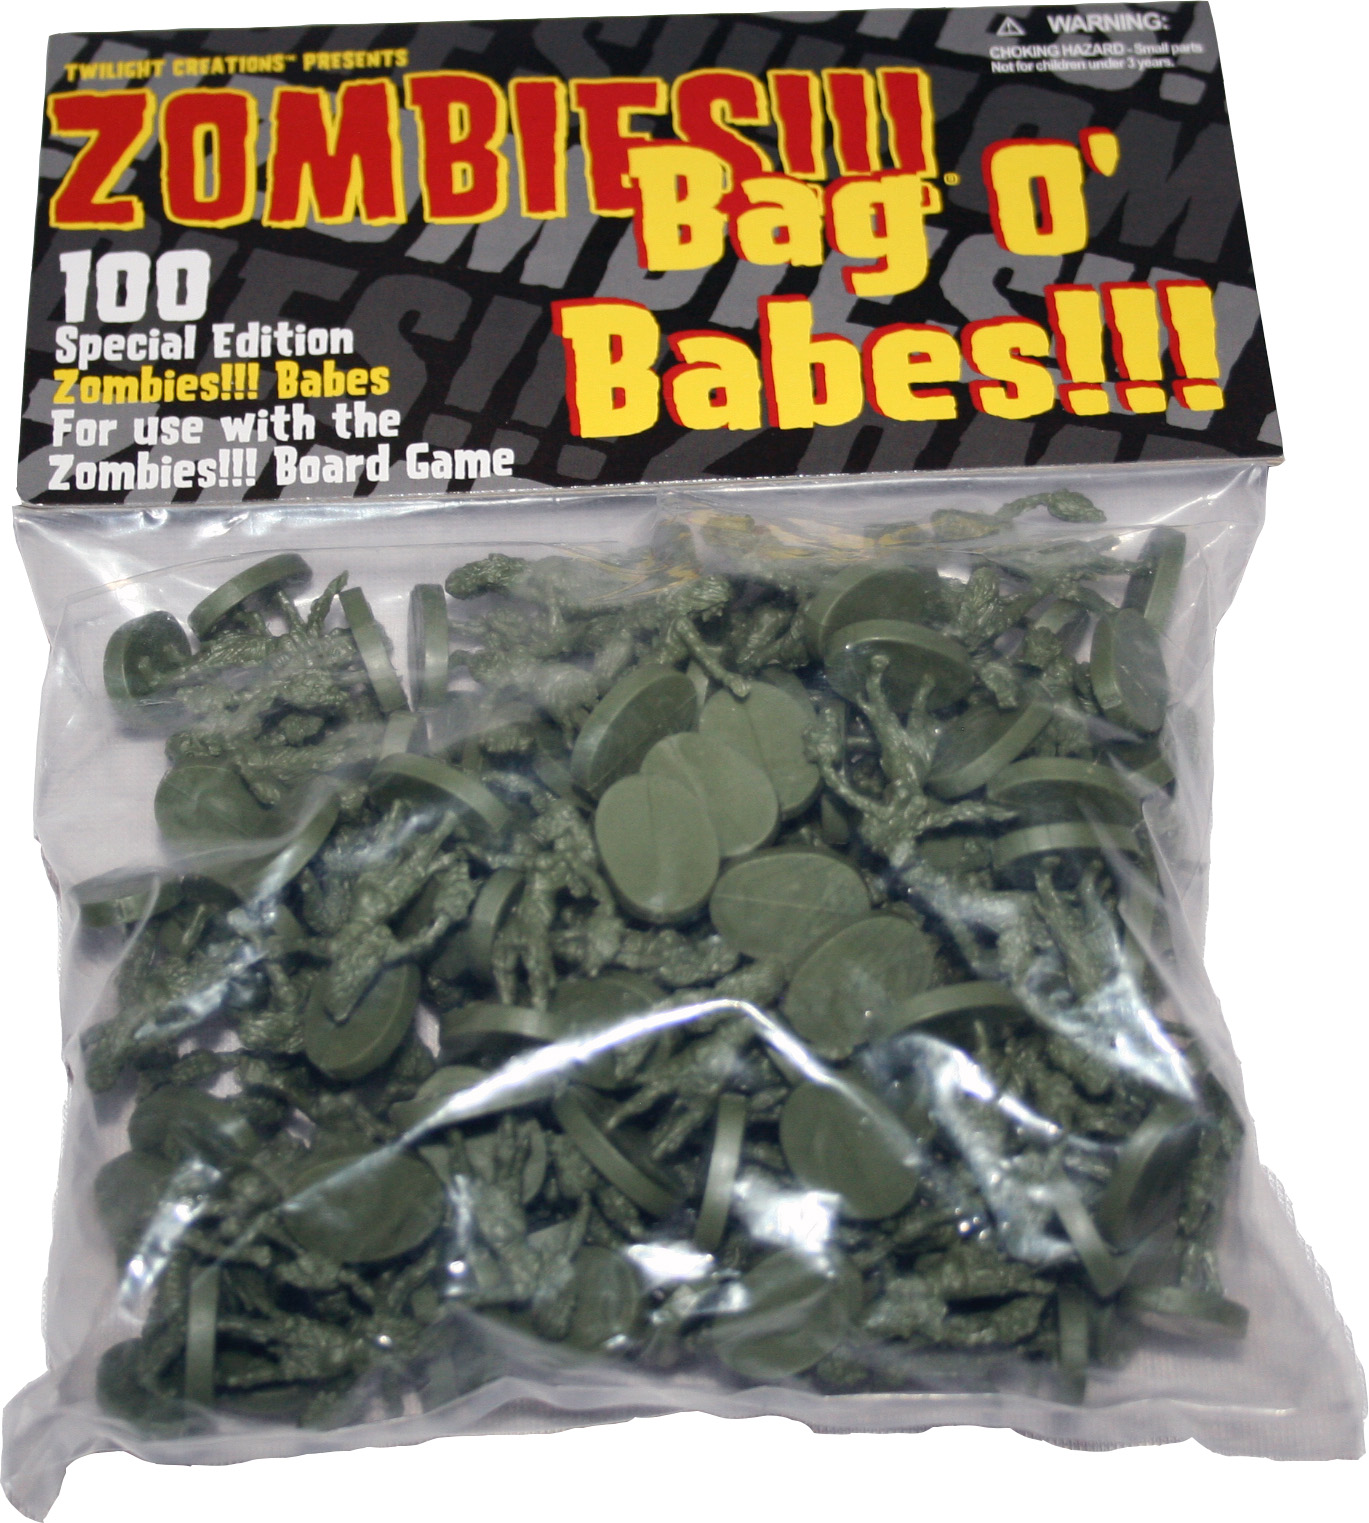 Zombies!!!: Bag O Zombies - Babes Box Front